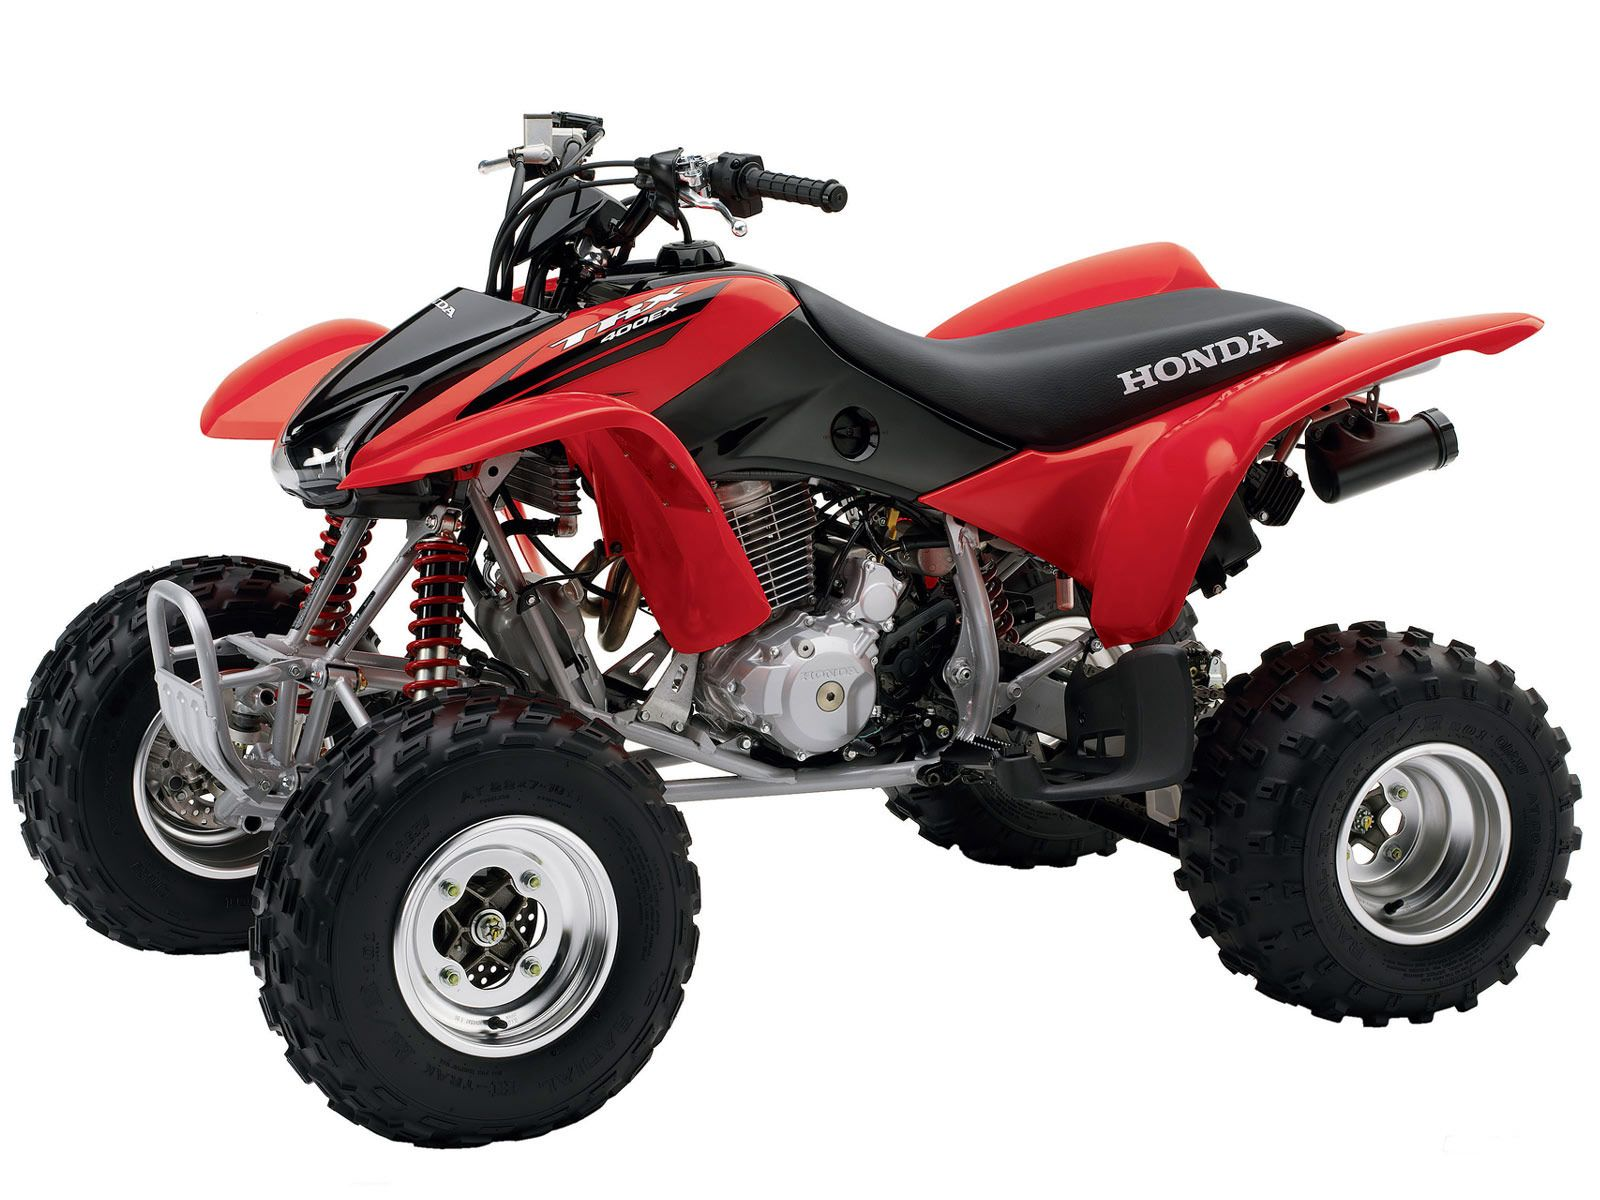 Atv Atv Products Atv Manufacturers Page 1 Of 5 Atv Dirtbikes 4 Wheelers